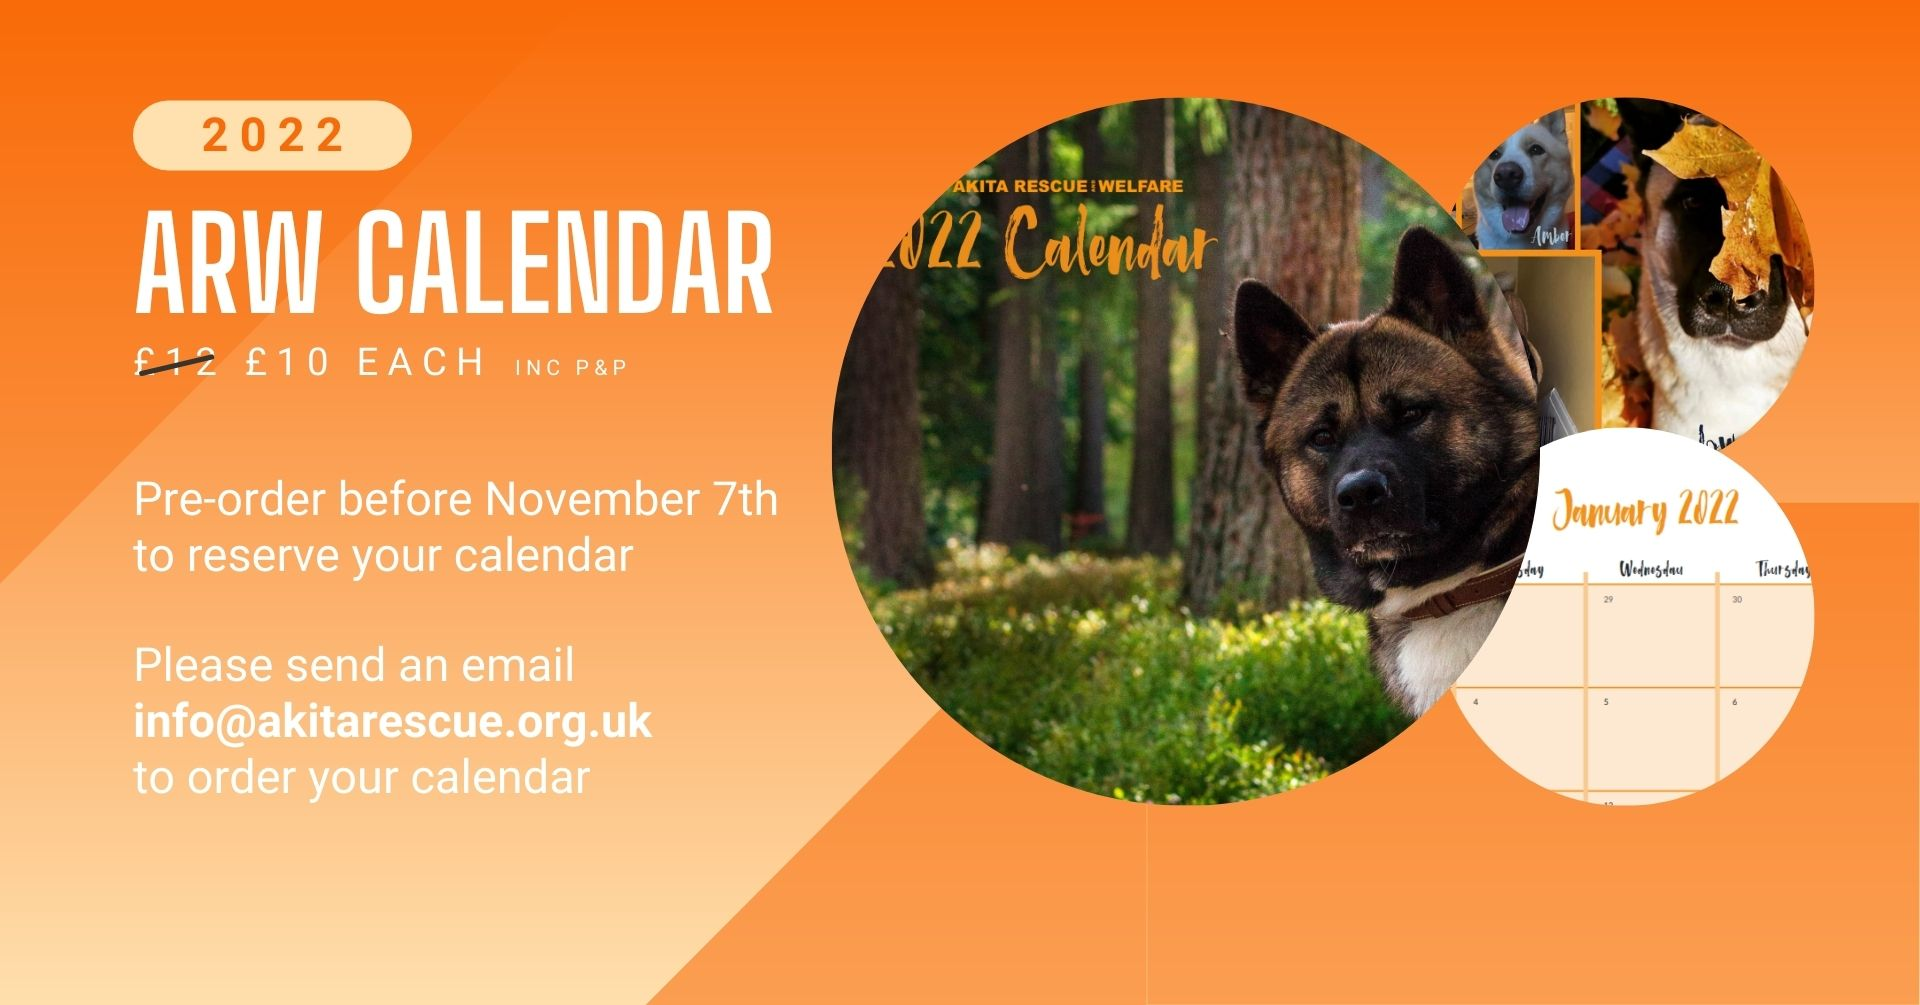 Please email info@akitarescue.org to order your calendar